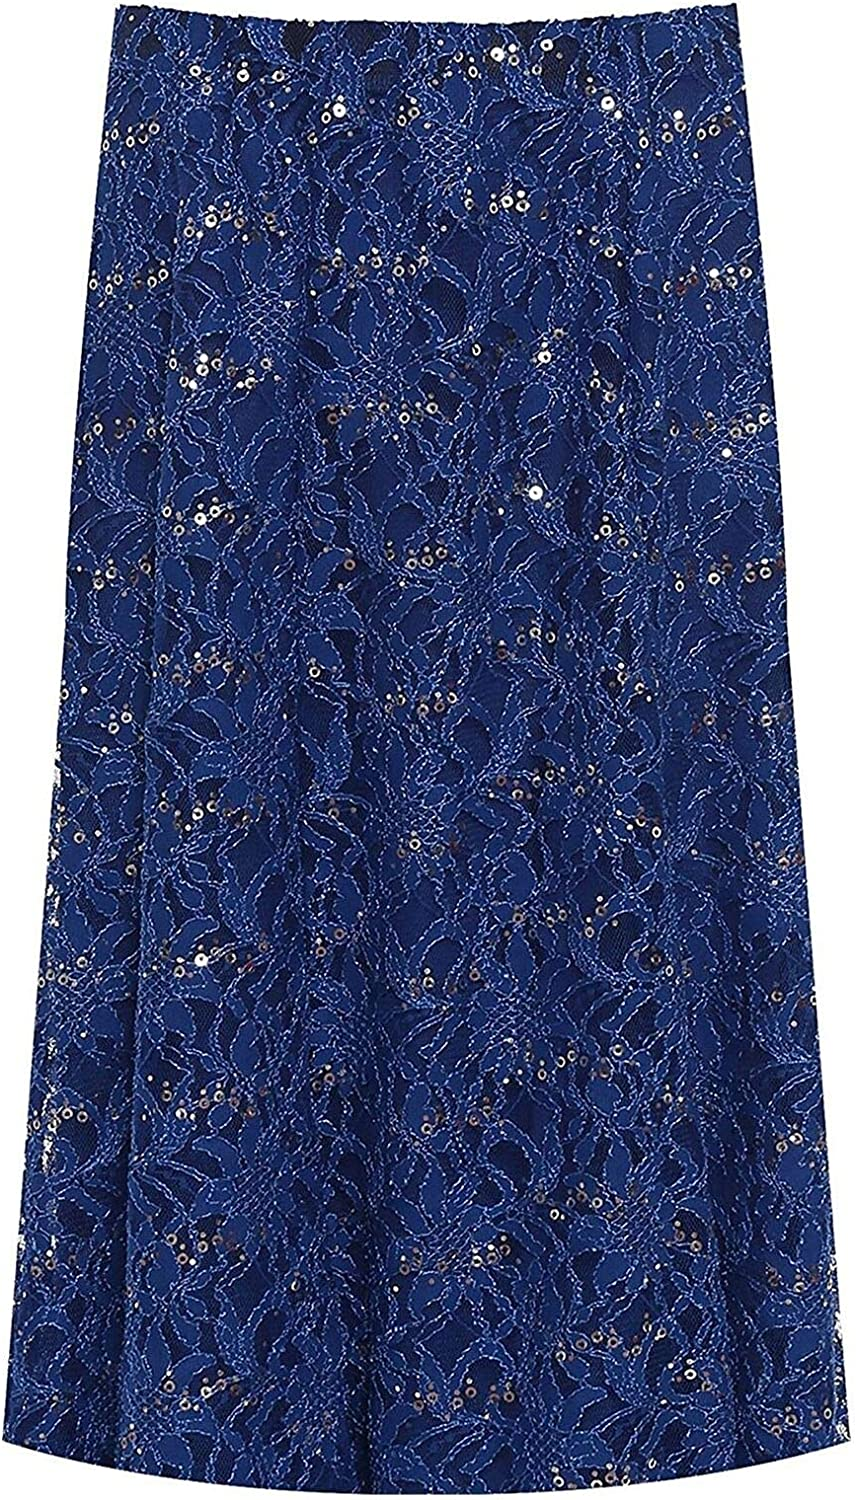 Style wise Fashion Womens Sequin Floral Lace Lined Midi Skirt Ladies Elasticated Fancy Party Skirt